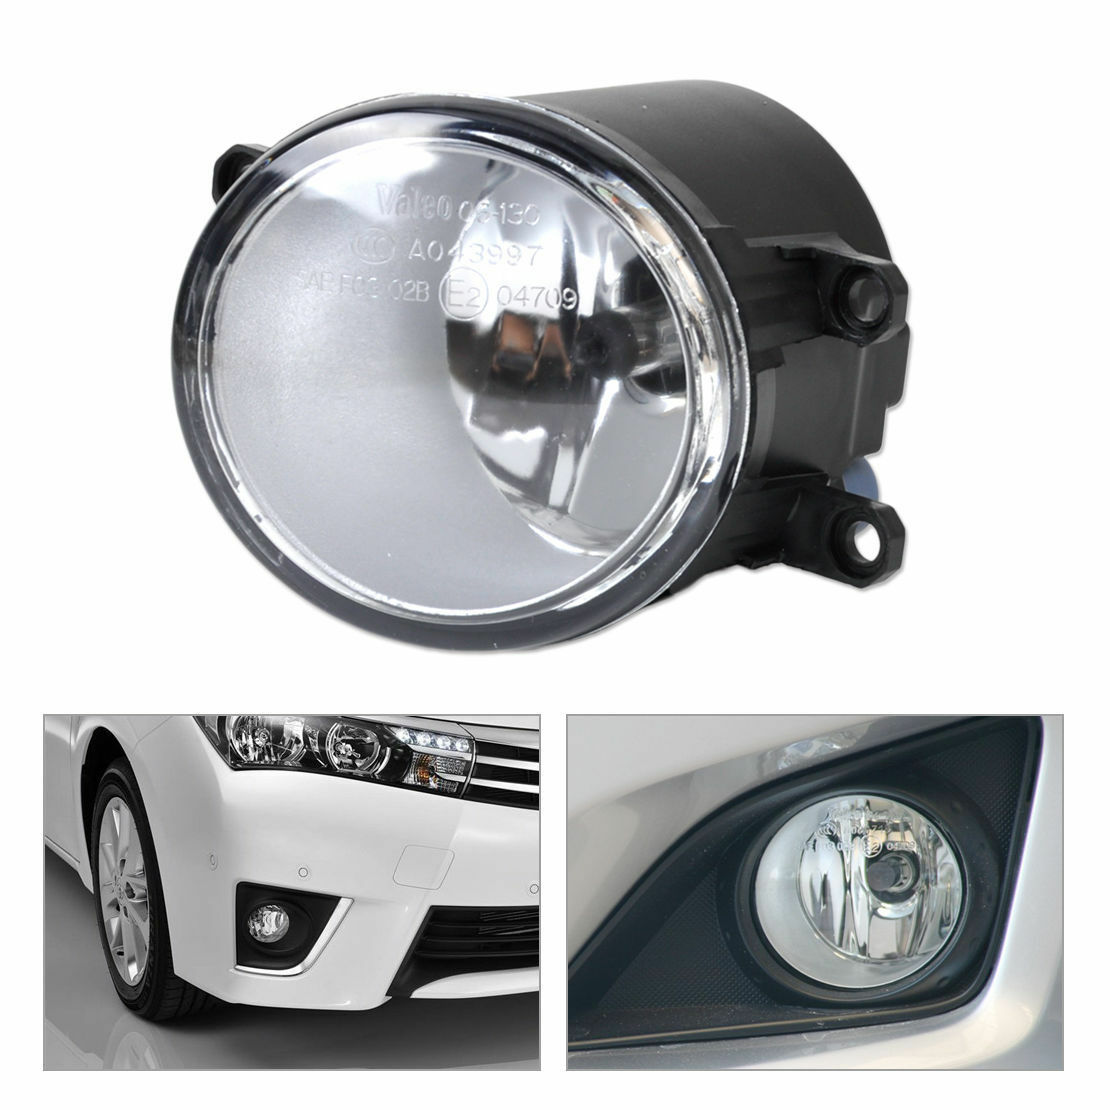 Toyota Yaris 2007 Light Bulbs